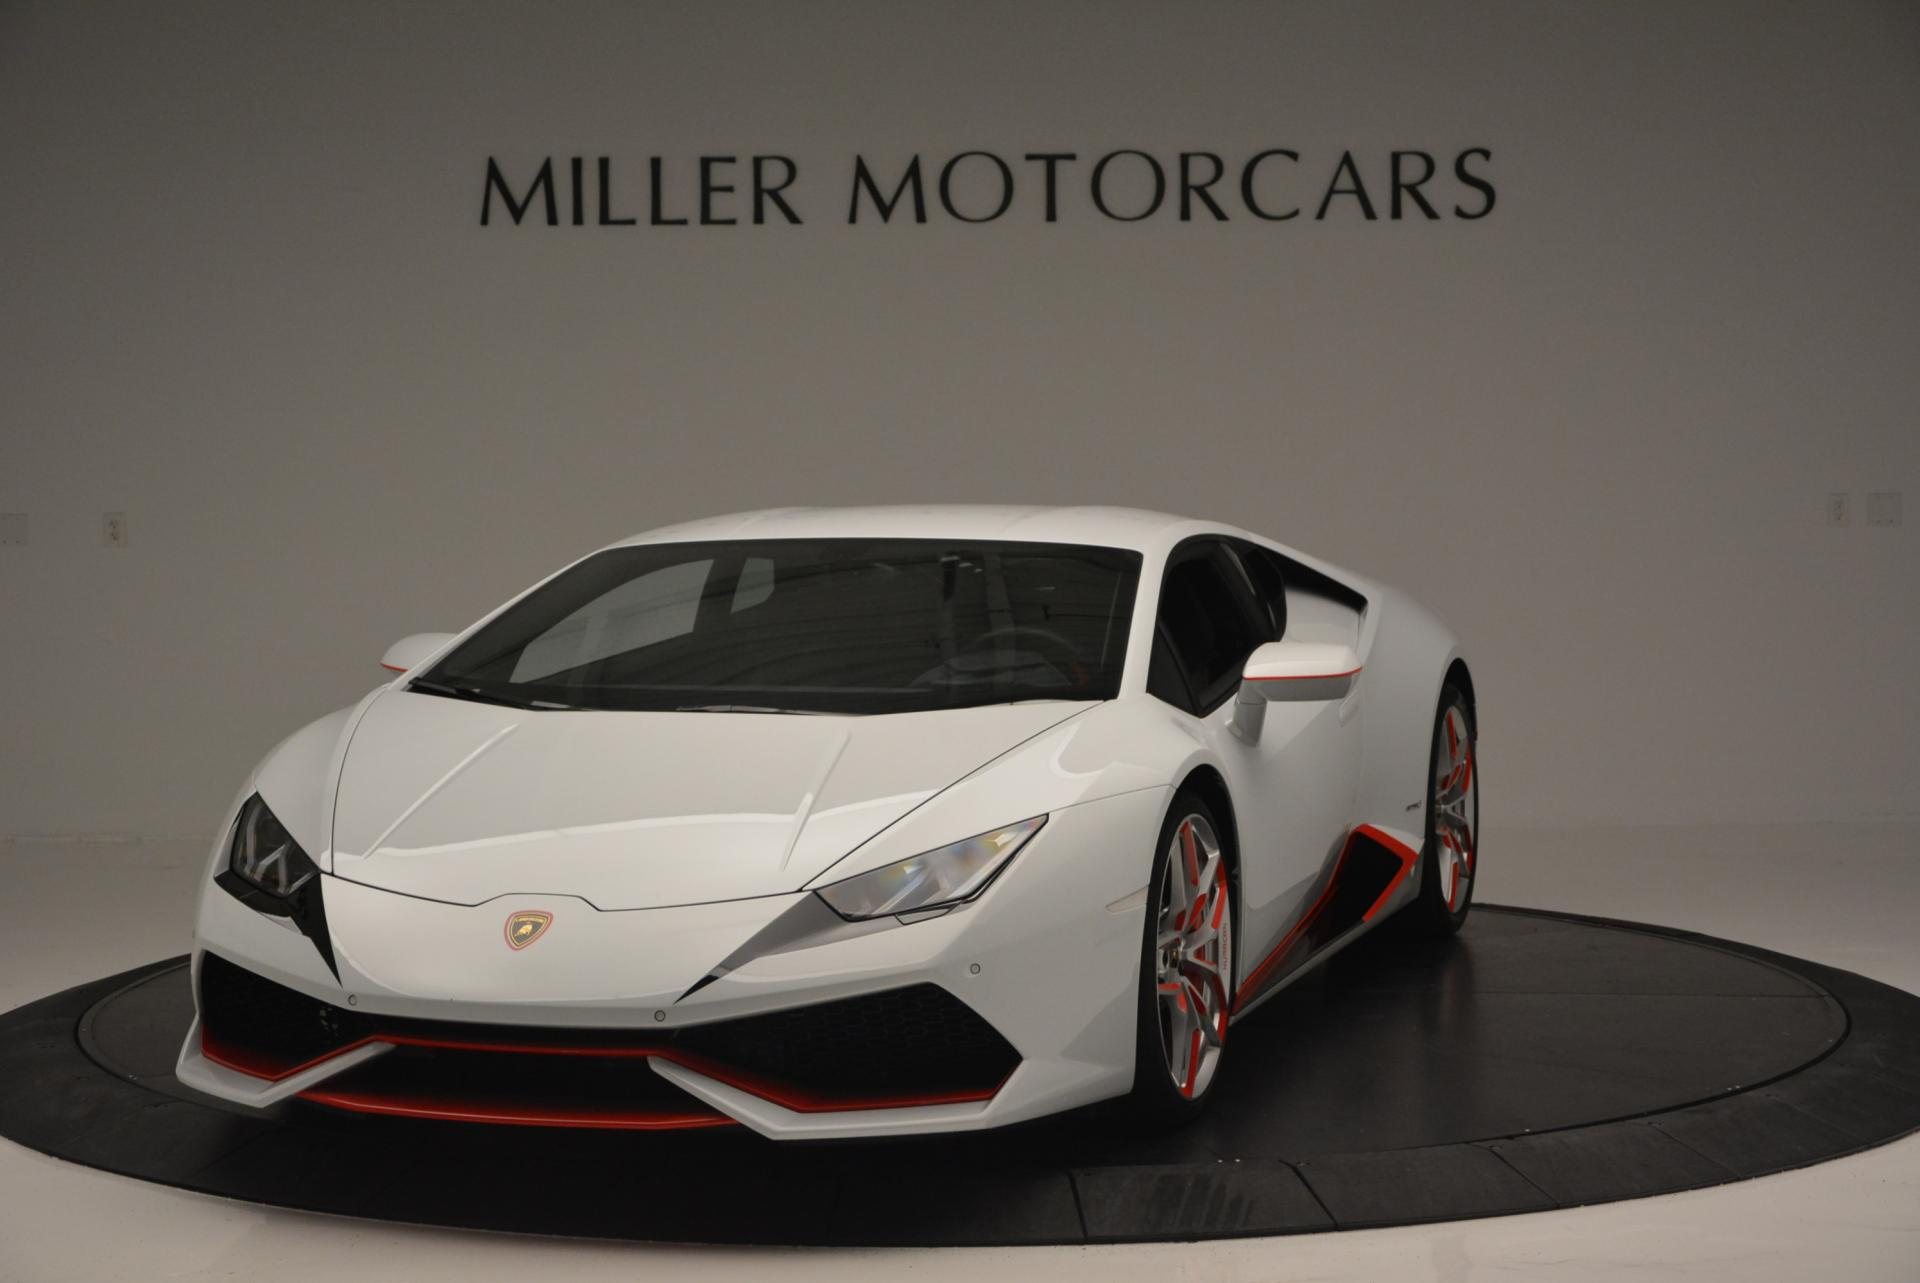 Used 2015 Lamborghini Huracan LP610-4 for sale Sold at McLaren Greenwich in Greenwich CT 06830 1